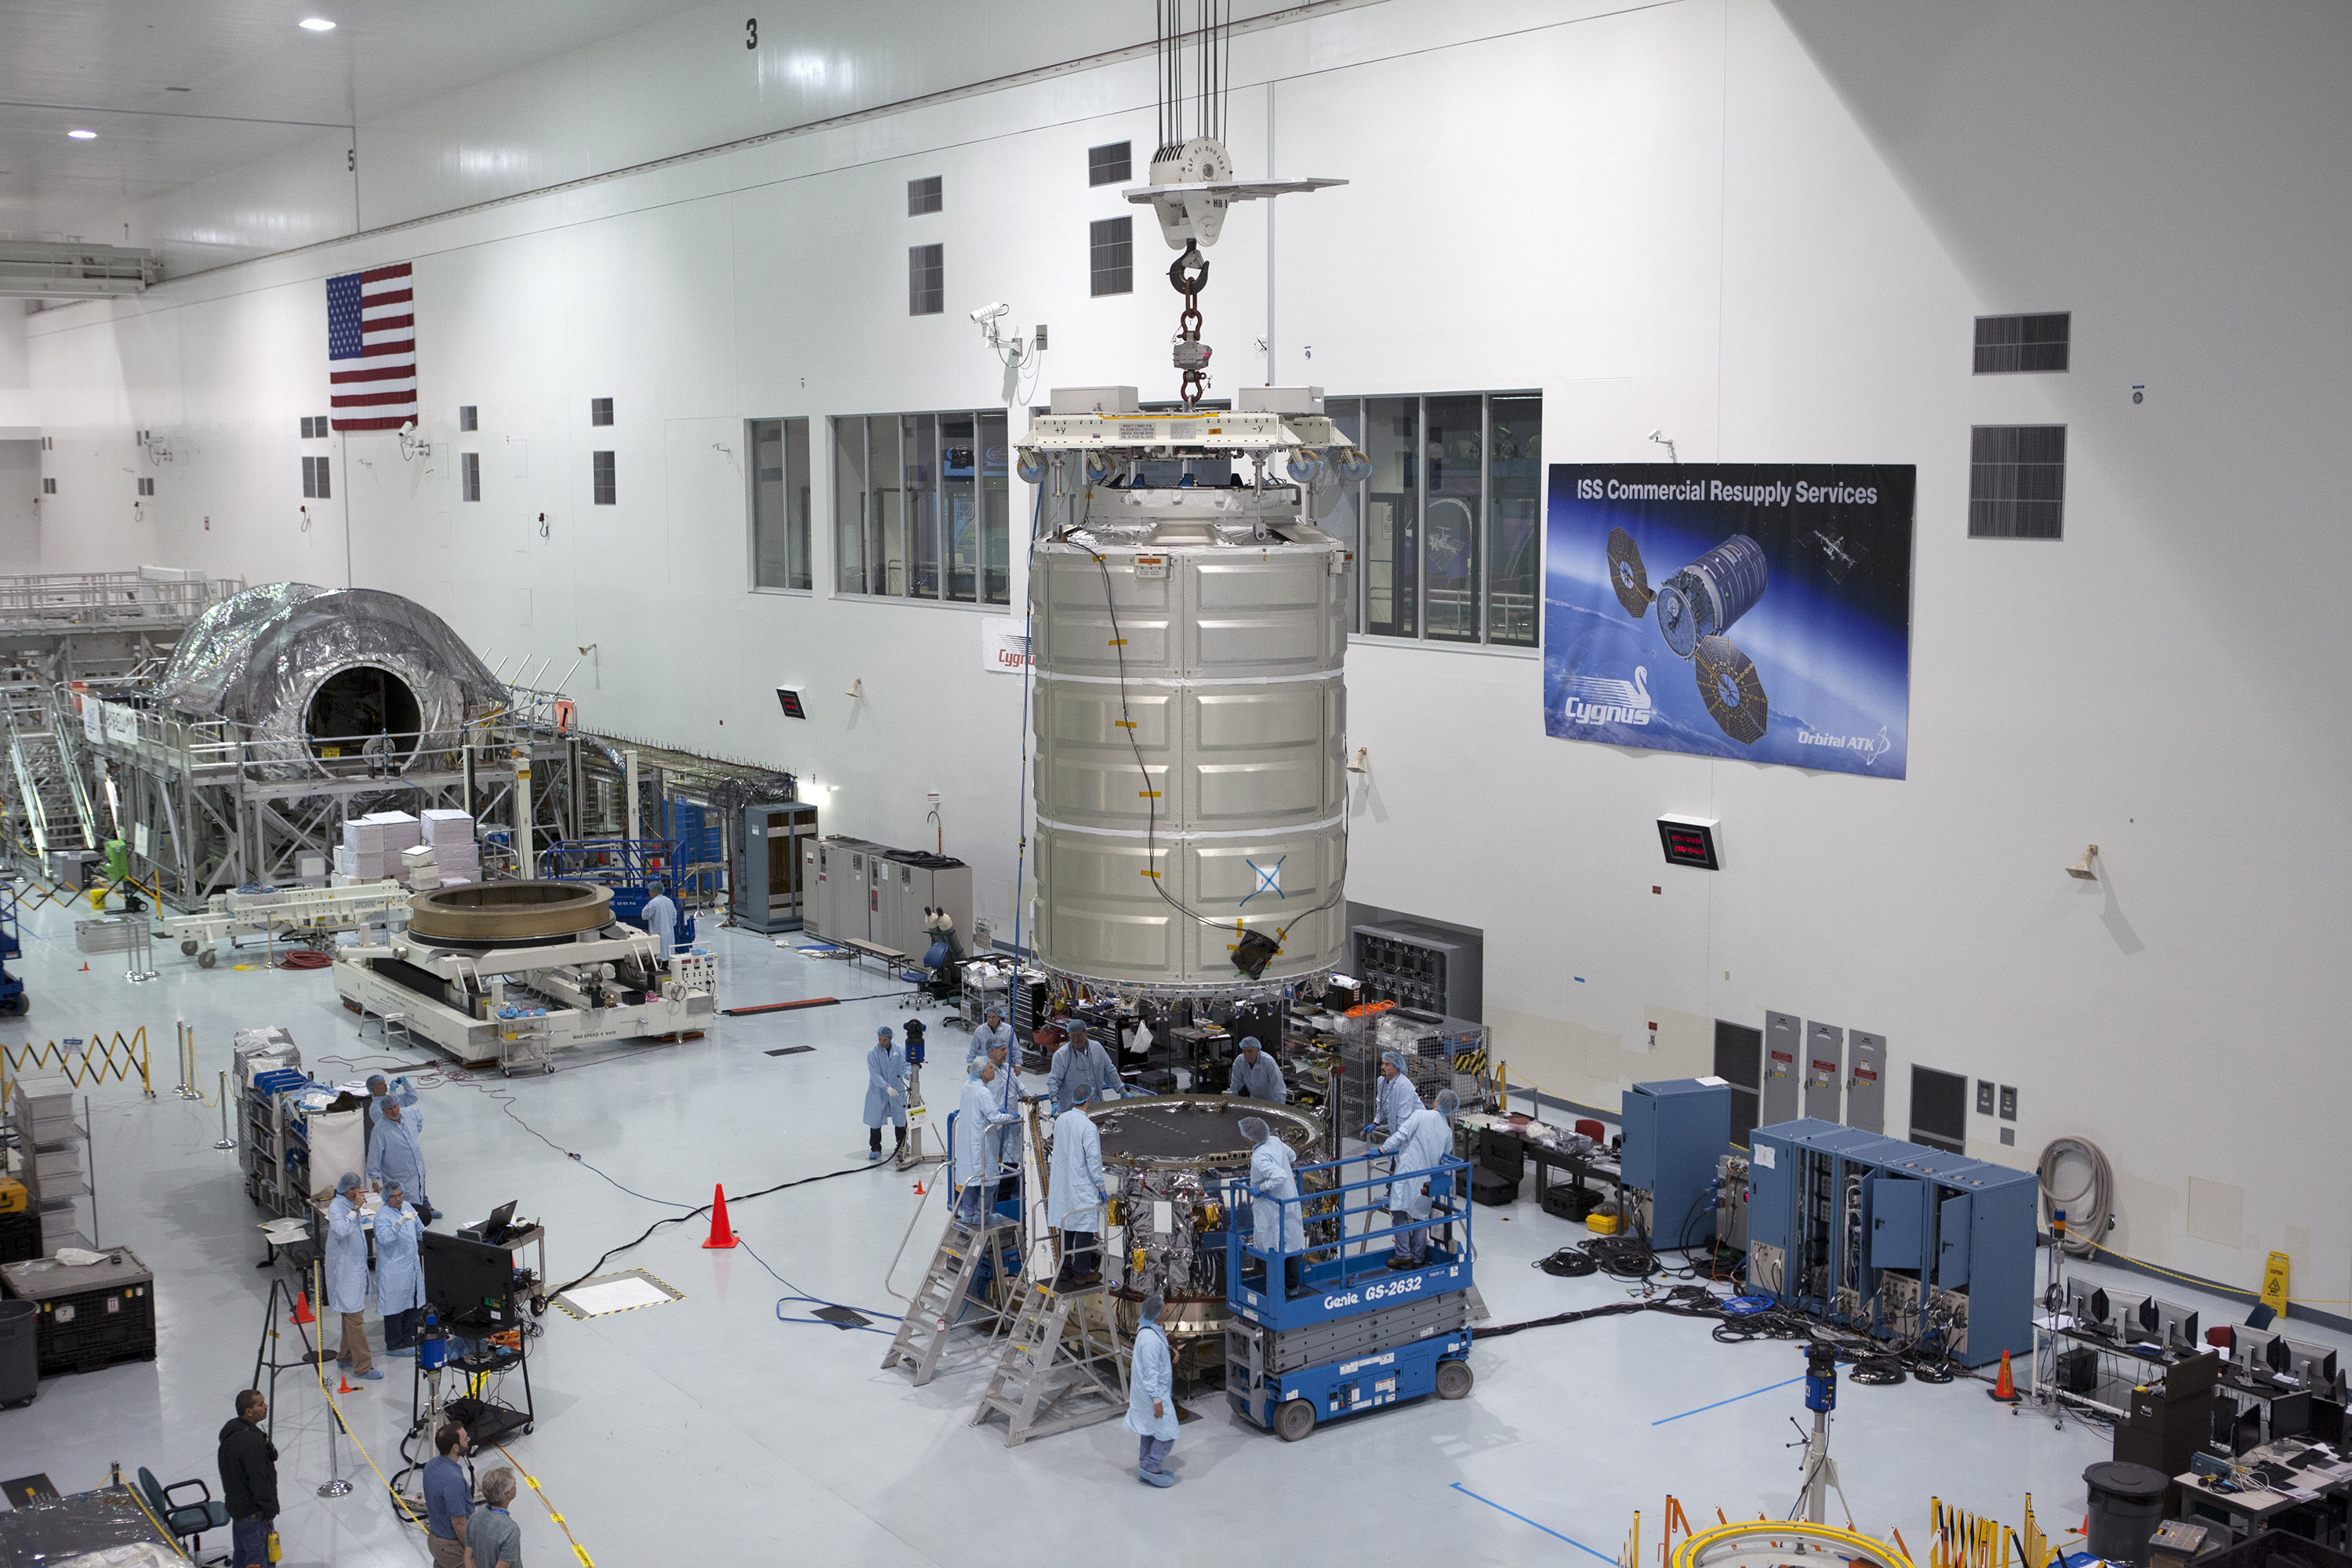 Orbital ATK Cygnus cargo spacecraft being processed at the Kennedy Space Center for upcoming unmanned cargo launch to the International Space Station (ISS) on Dec. 3, 2015.   Cygnus will ferry more than 7,000 pounds of supplies, equipment and experiments to the ISS.  Orbital ATK is vying for NASA's new Commercial Resupply Services (CRS) contract to supply the ISS through 2024.  Credit: NASA